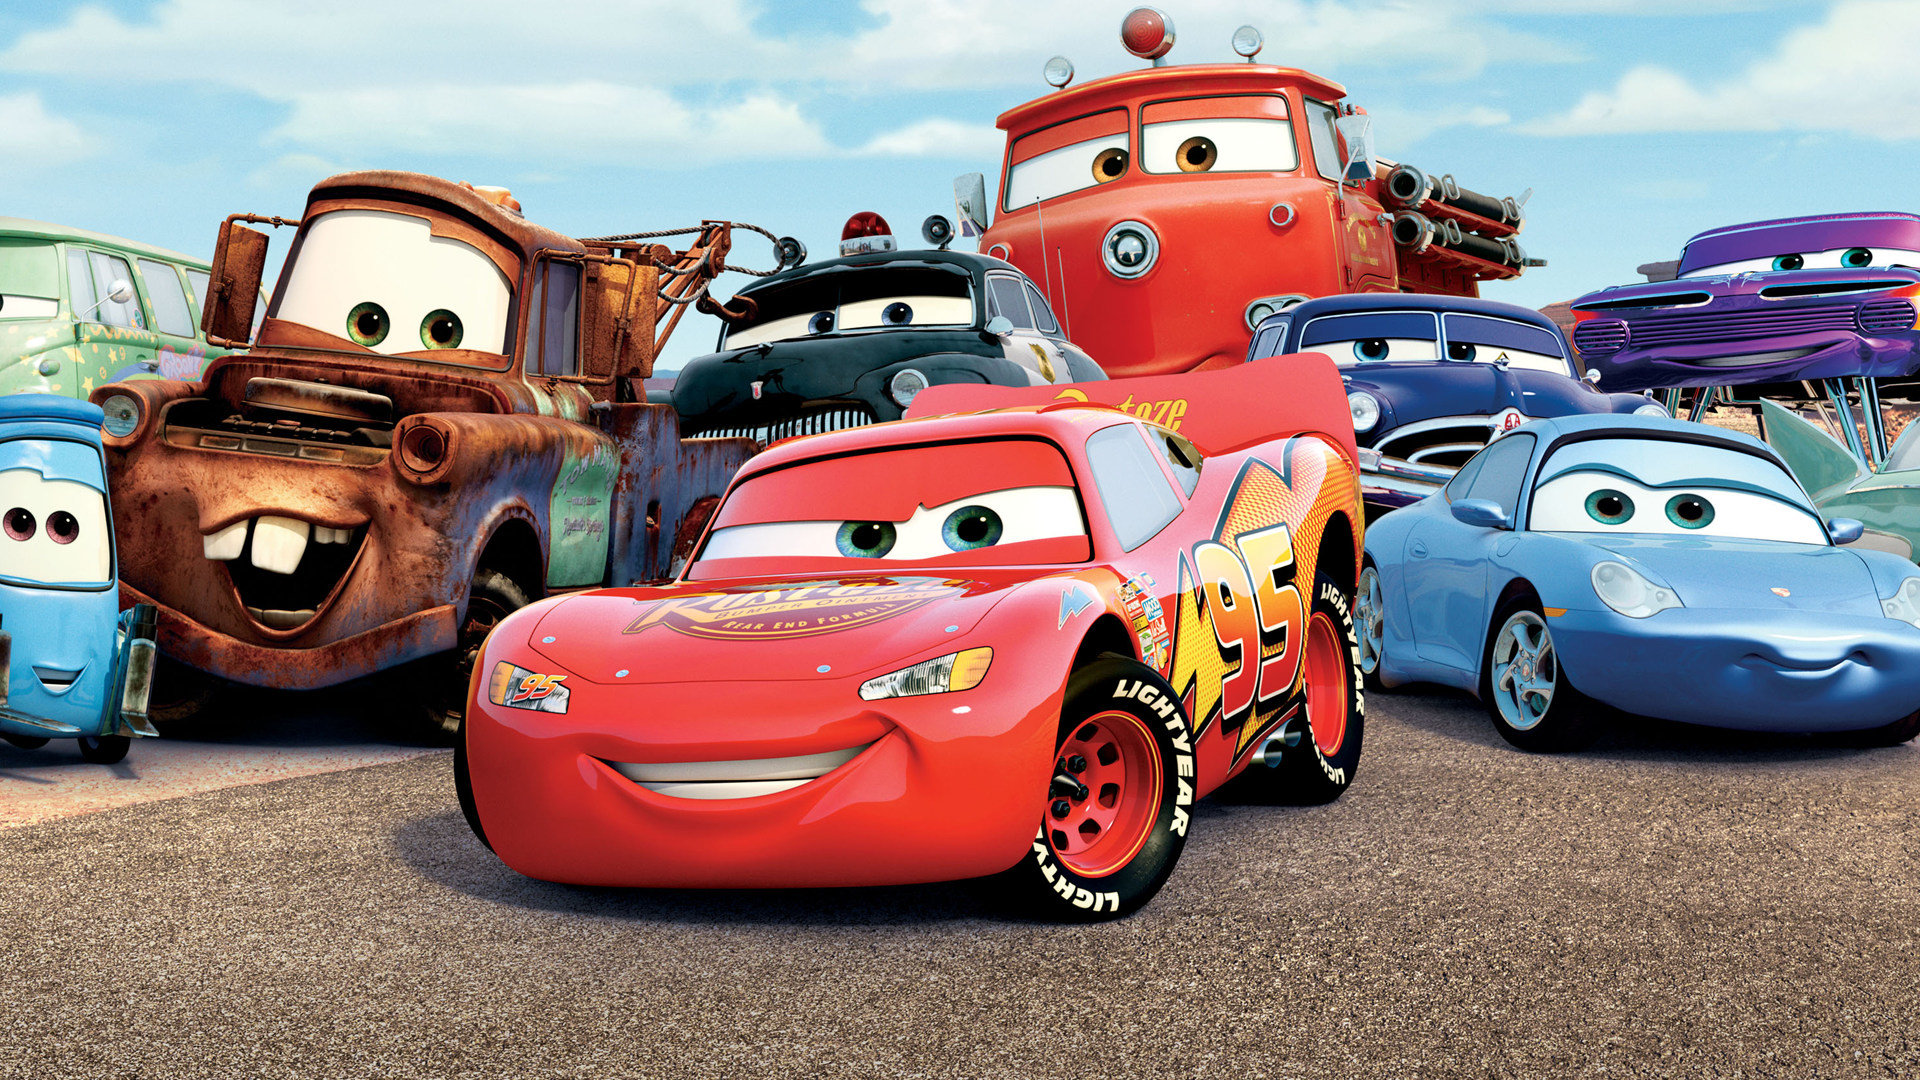 Cars Full Movie Free >> Cars Movie Wallpapers 1920x1080 Full Hd 1080p Desktop